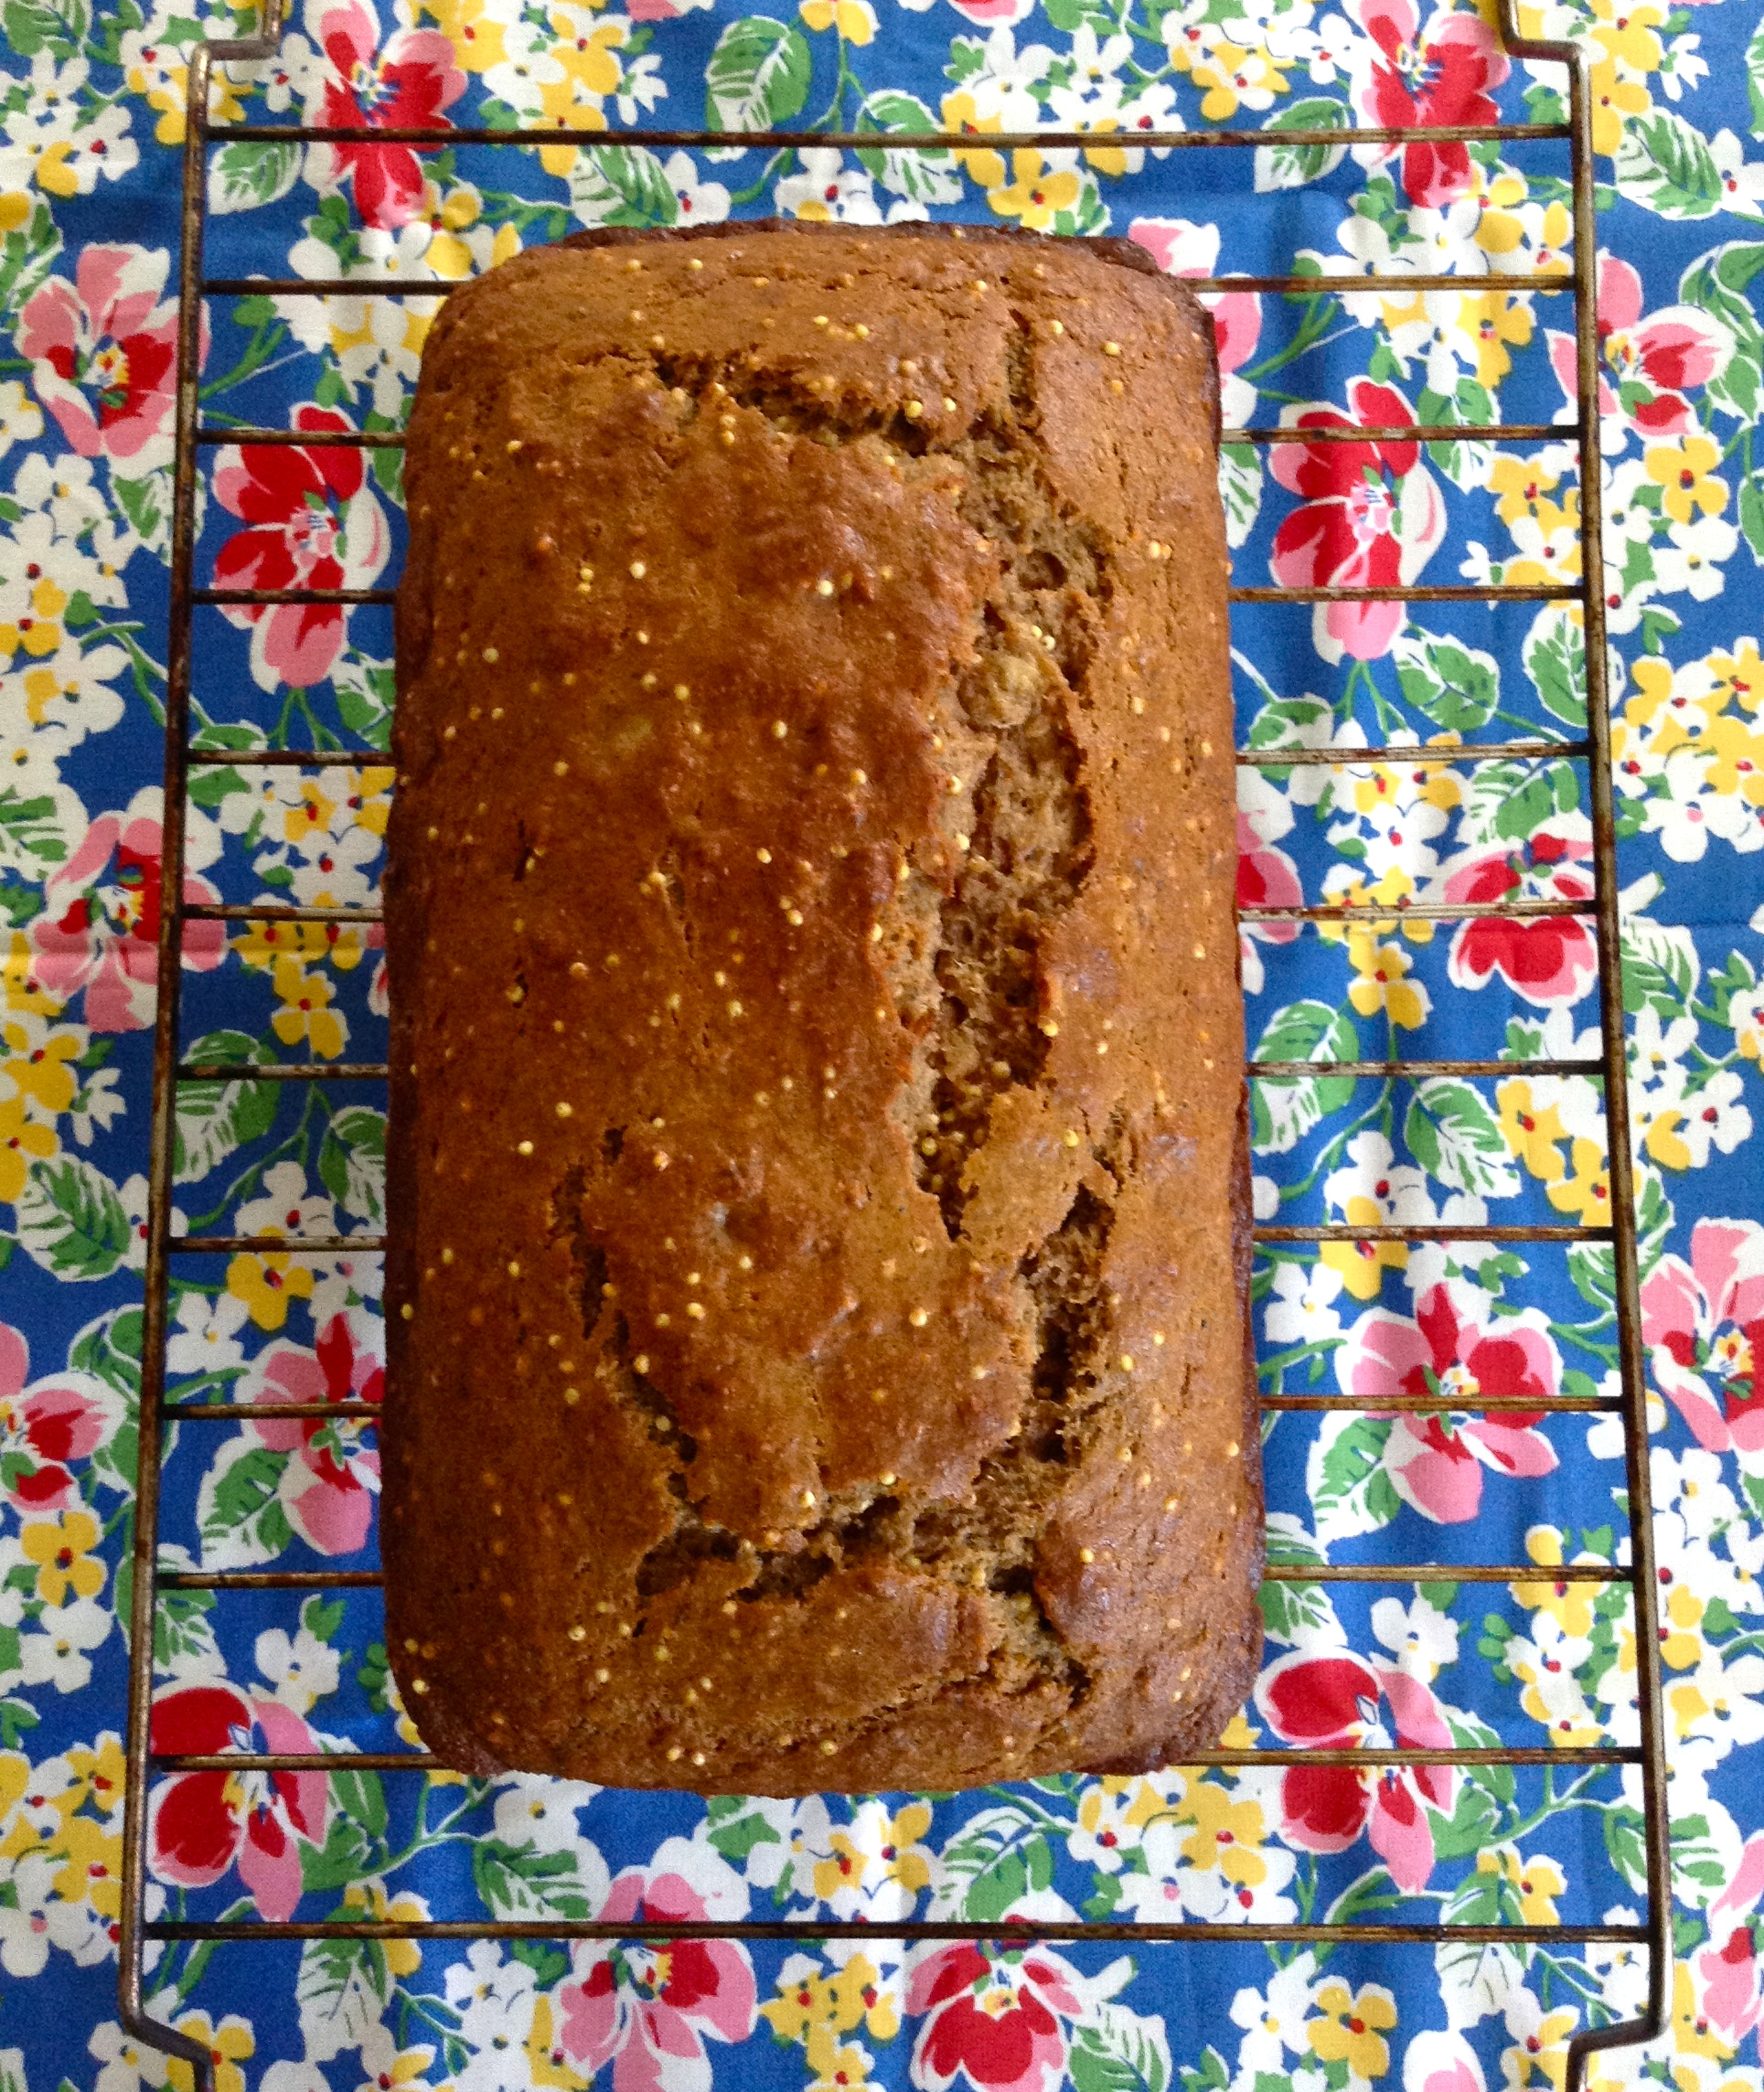 smitten kitchen crackly banana bread | Wendy world